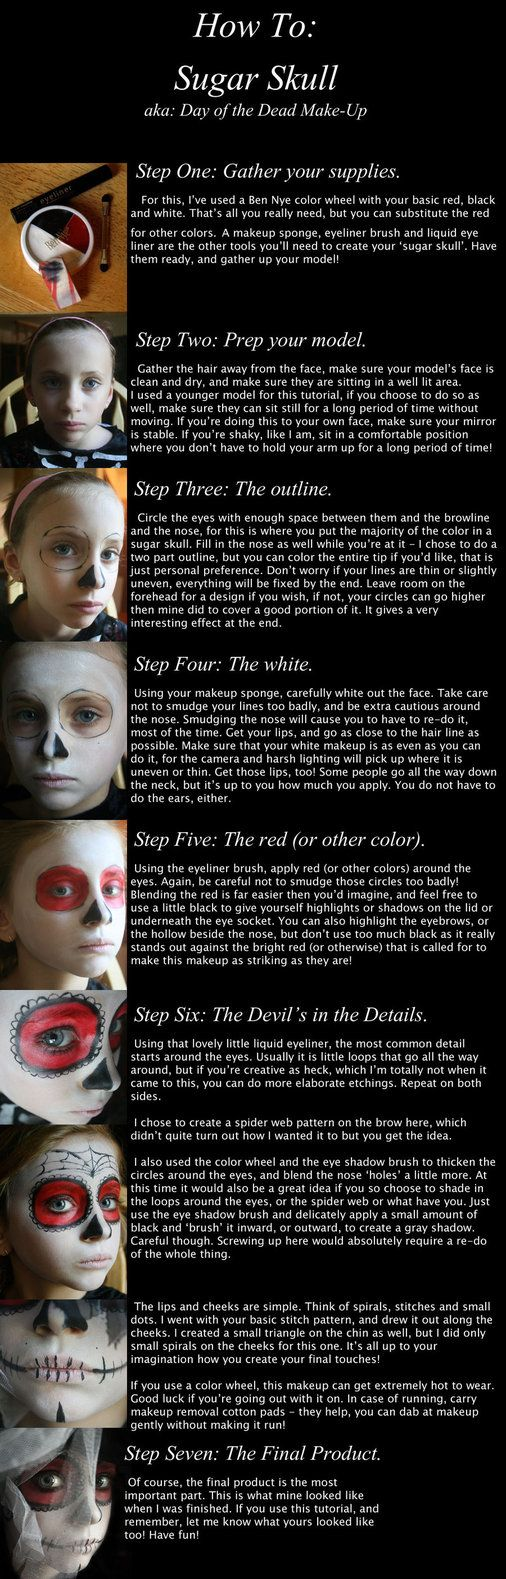 Available for download. How to make a basic, simple day of the dead face paint. Wasn't sure what category to place this in, but since the outcome was photographic in nature, I put it there. Correct...